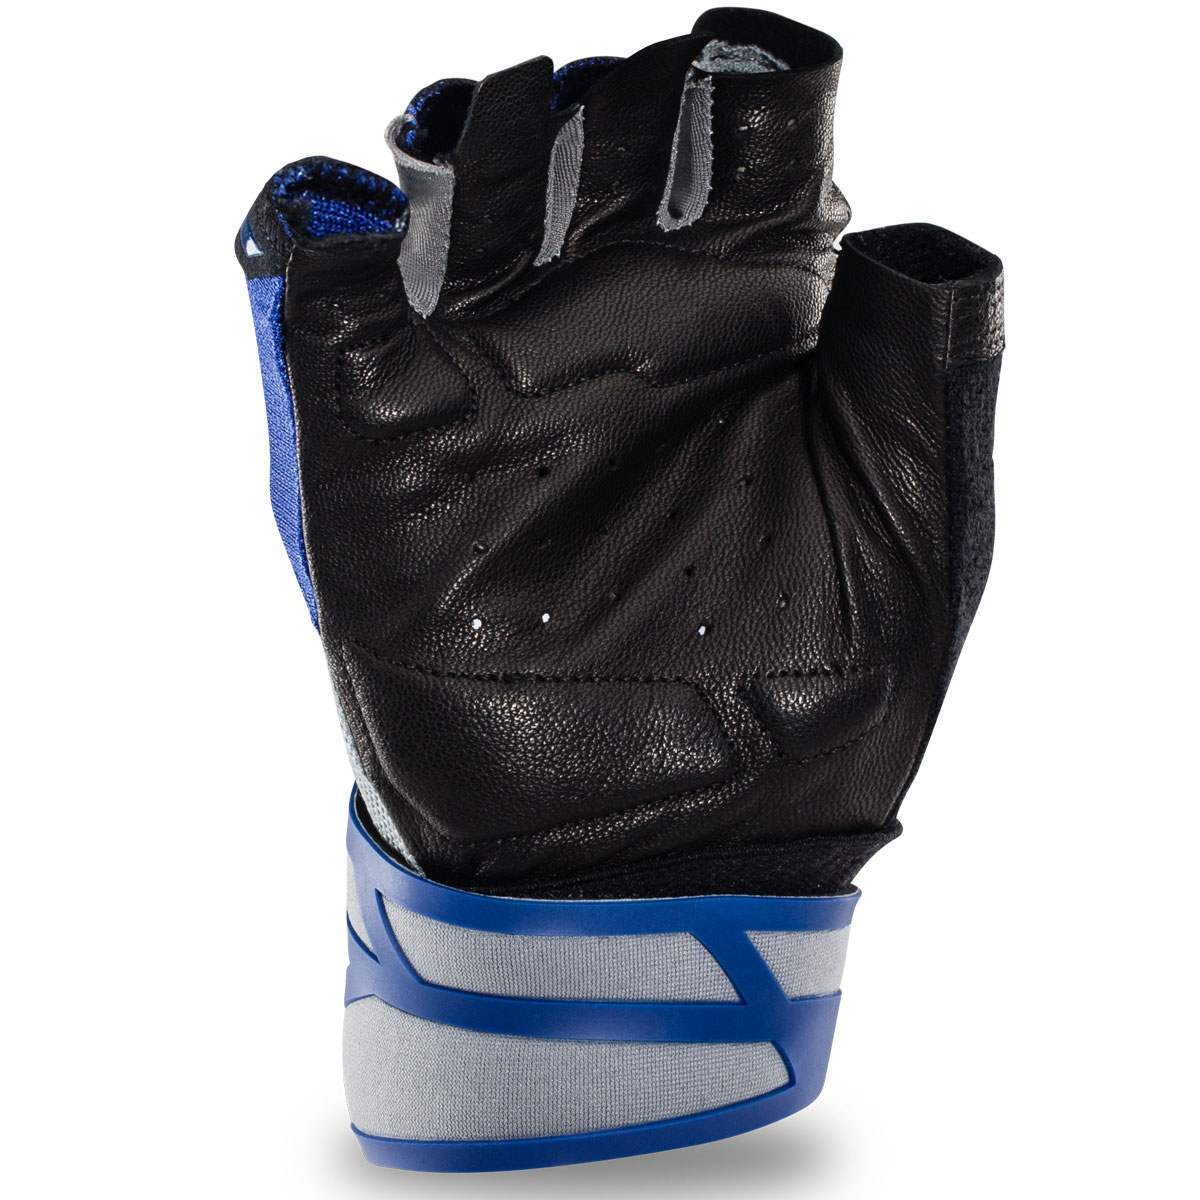 Weight Lifting Gloves Xxl: Under Armour 2017 Mens UA Resistor Training Gloves Support